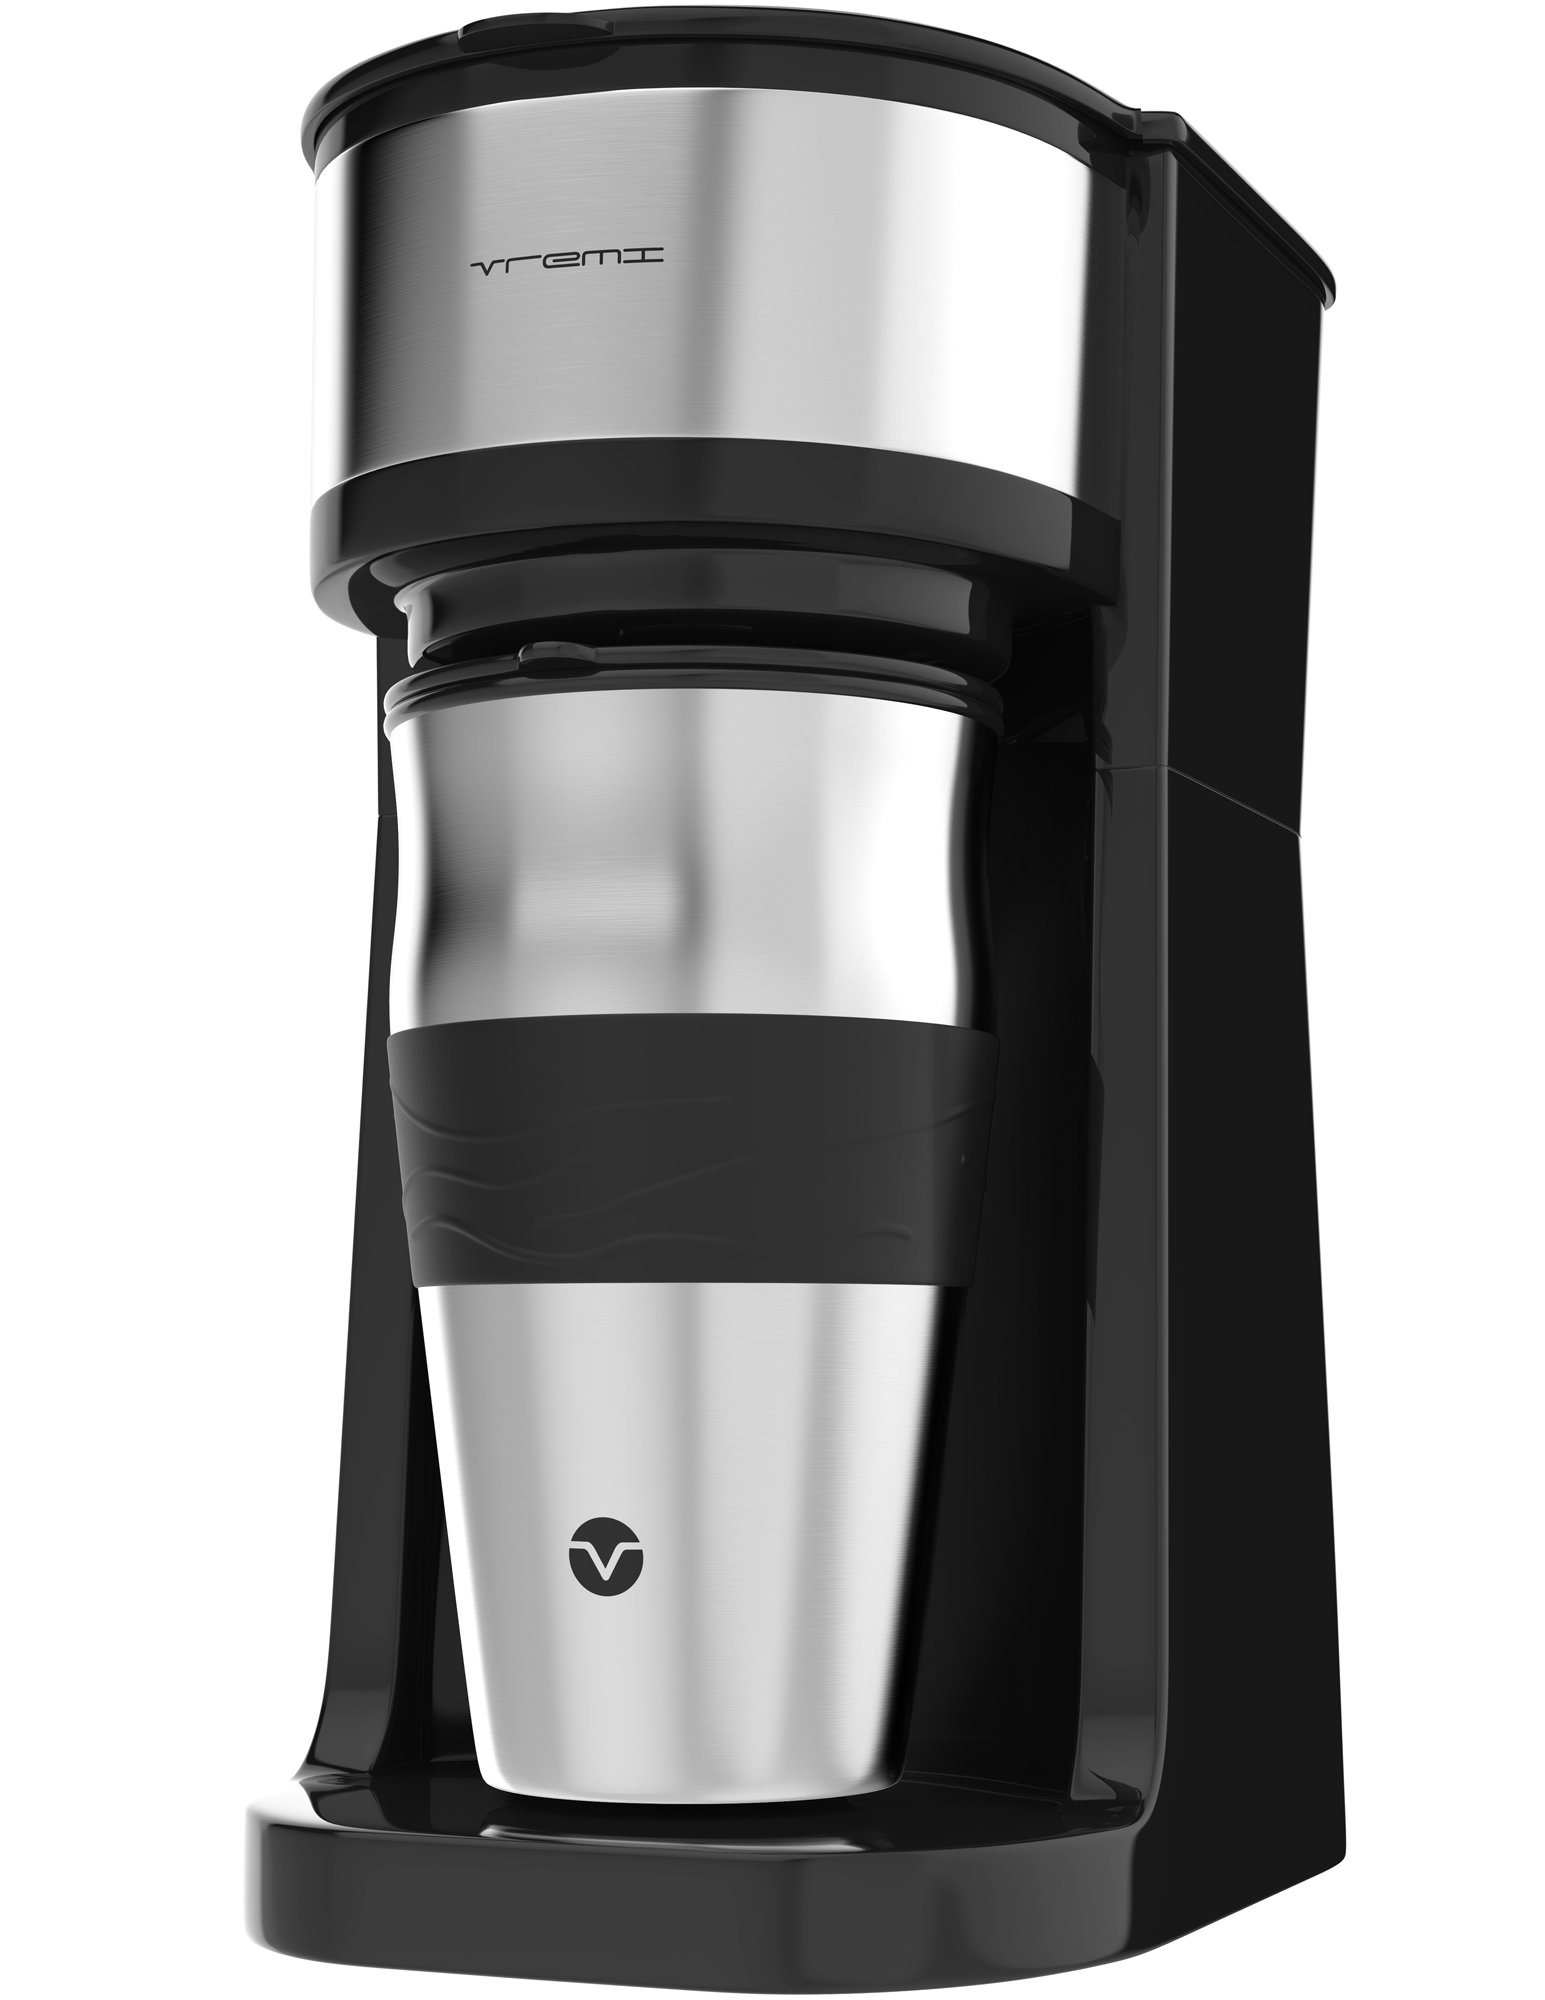 Vremi Single Cup Coffee Maker - Includes 14 Ounce Travel Coffee Mug and Reusable Filter - Personal 1 Cup Drip Coffee Maker to Brew Ground Beans - Black and Silver Single Serve One Cup Coffee Dripper by Vremi